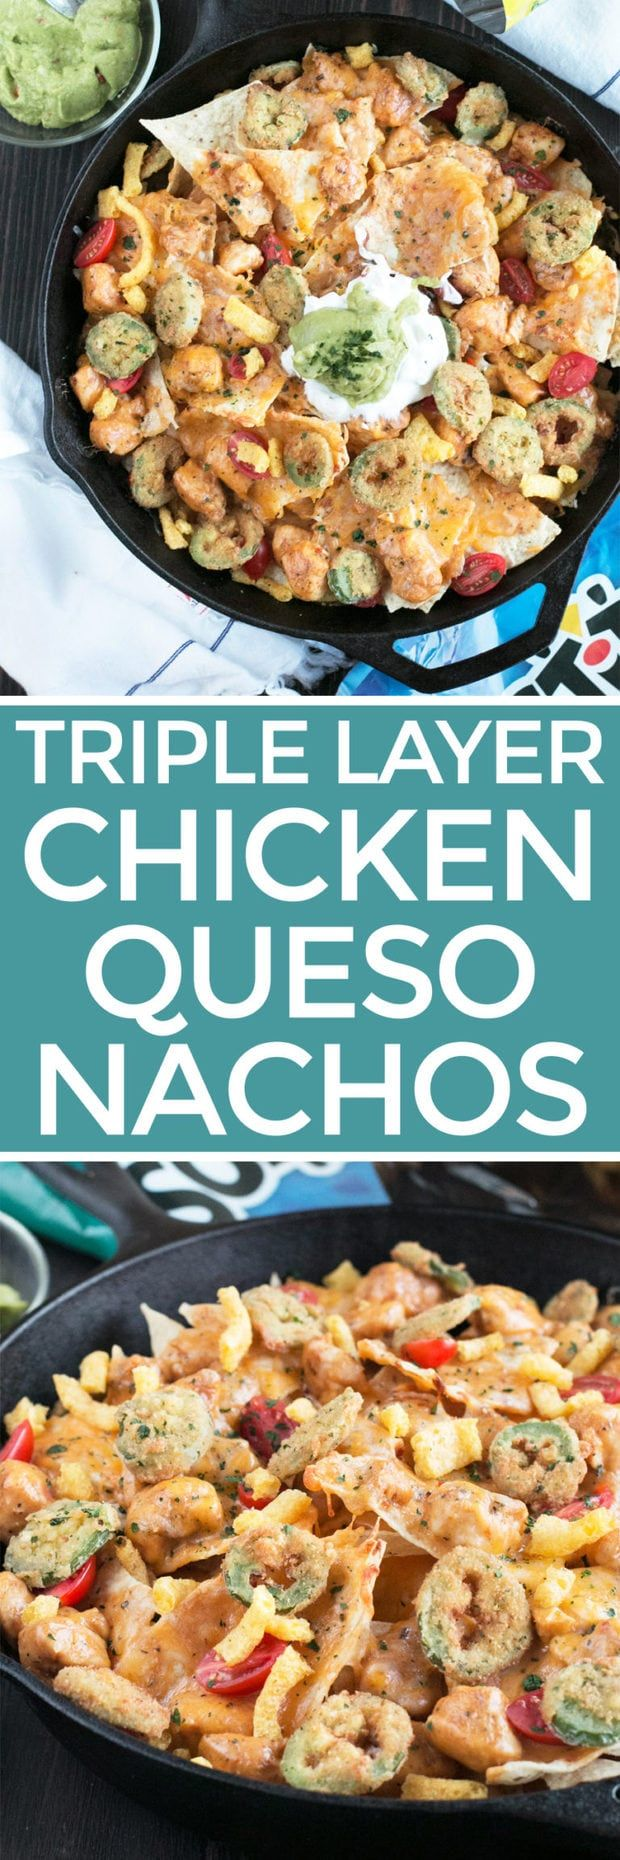 Triple Layer Chipotle Chicken Queso Nachos with Fried Jalapeños